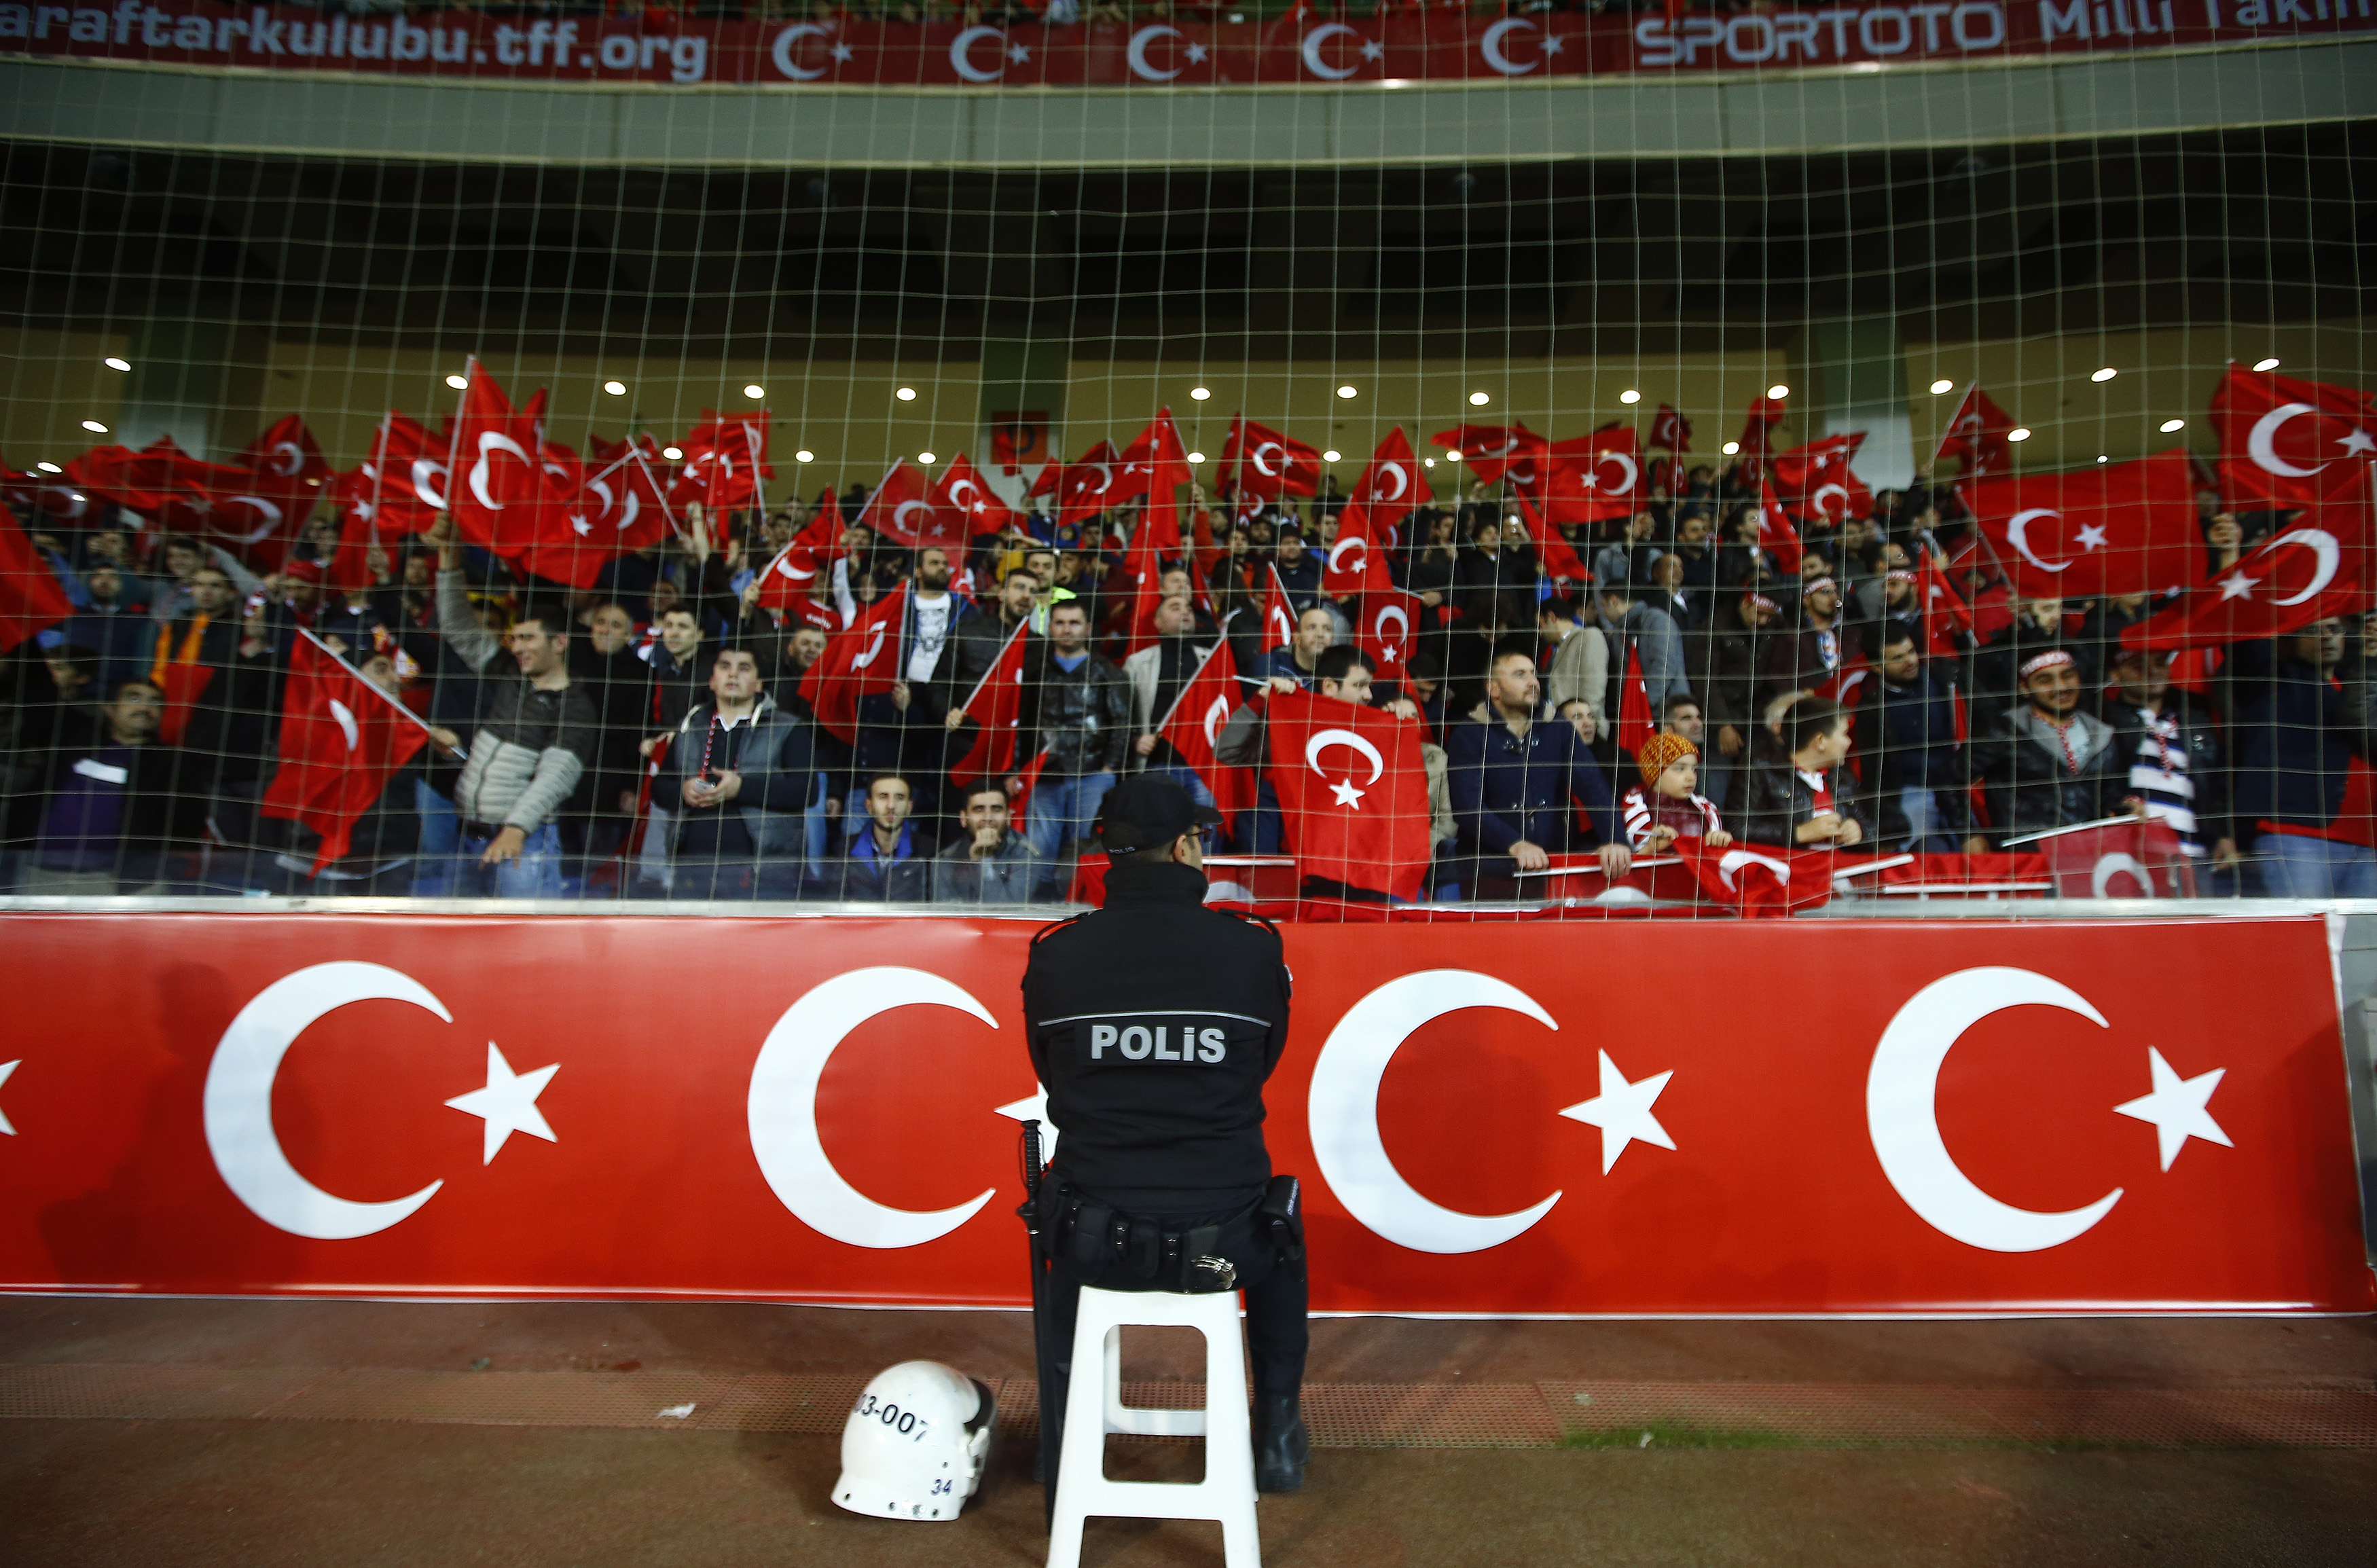 A policeman stands guard in front of supporters of Turkey during their international friendly soccer match against Greece at Basaksehir Fatih Terim Stadium in Istanbul on Nov. 17, 2015